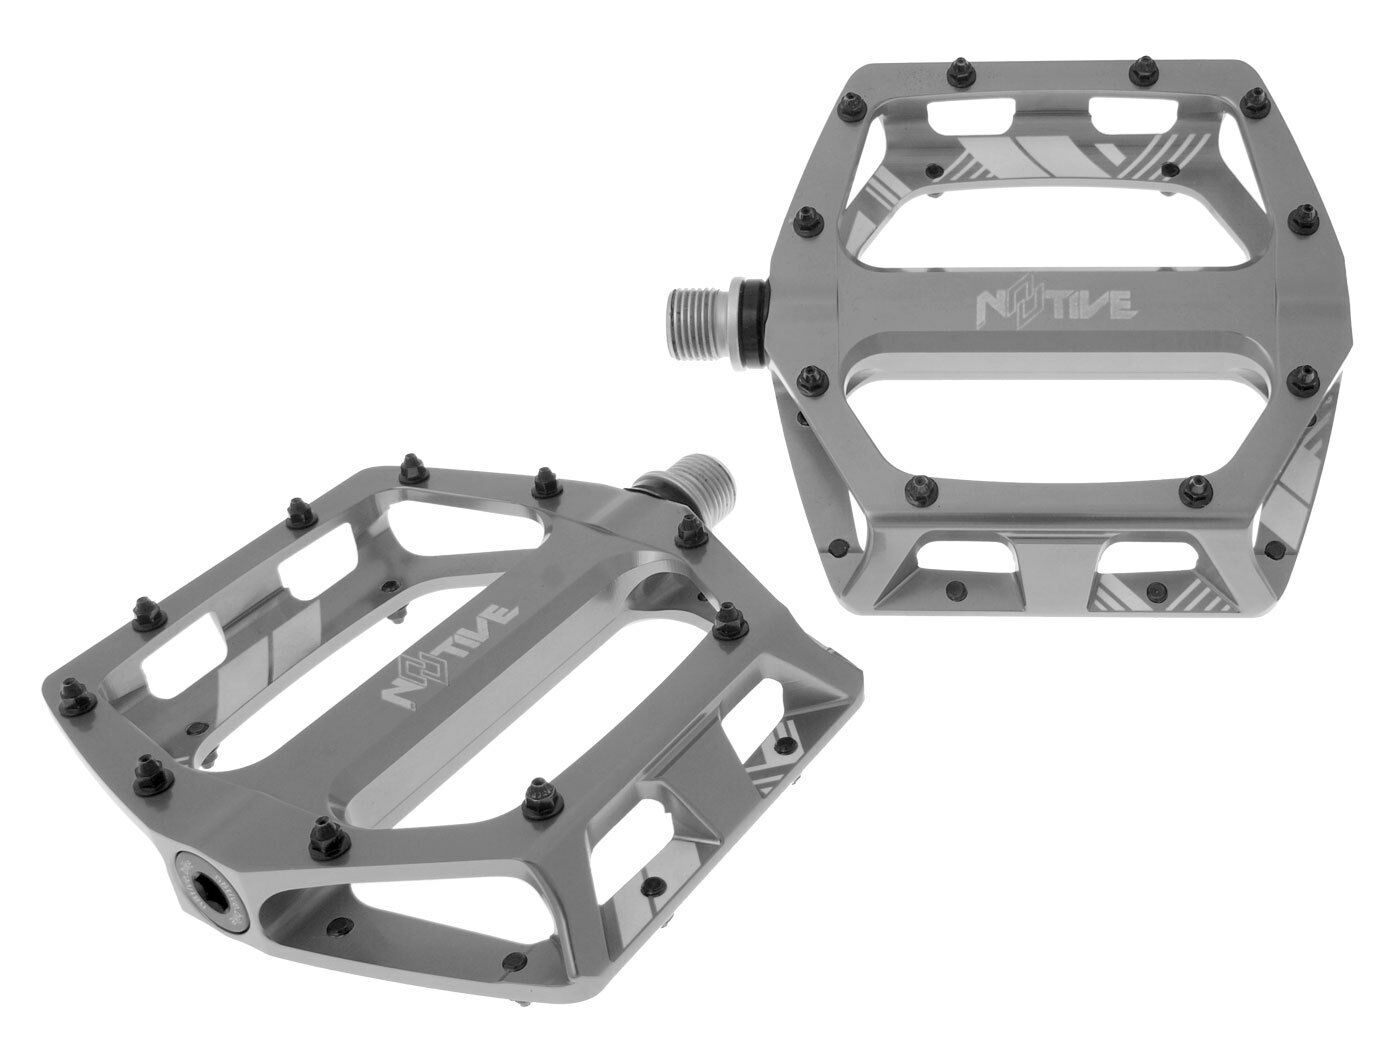 N8tive Piatto Pedal Set XC 99x100mm Grigio per Enduro Trail AllMountain Bmx